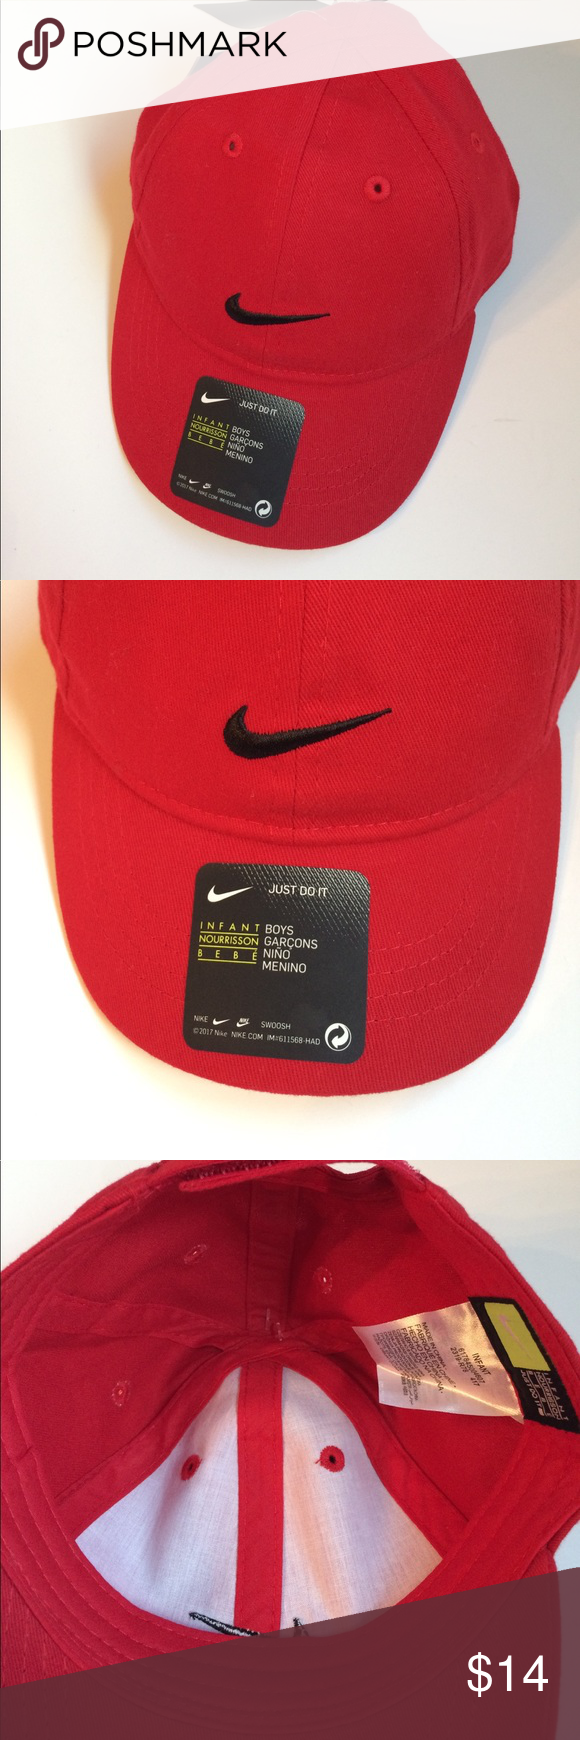 c243588c09d Nike NWT baseball cap hat red infant size Brand new! Infant NIKE Cap Red NWT  great for all year. Nike Accessories Hats